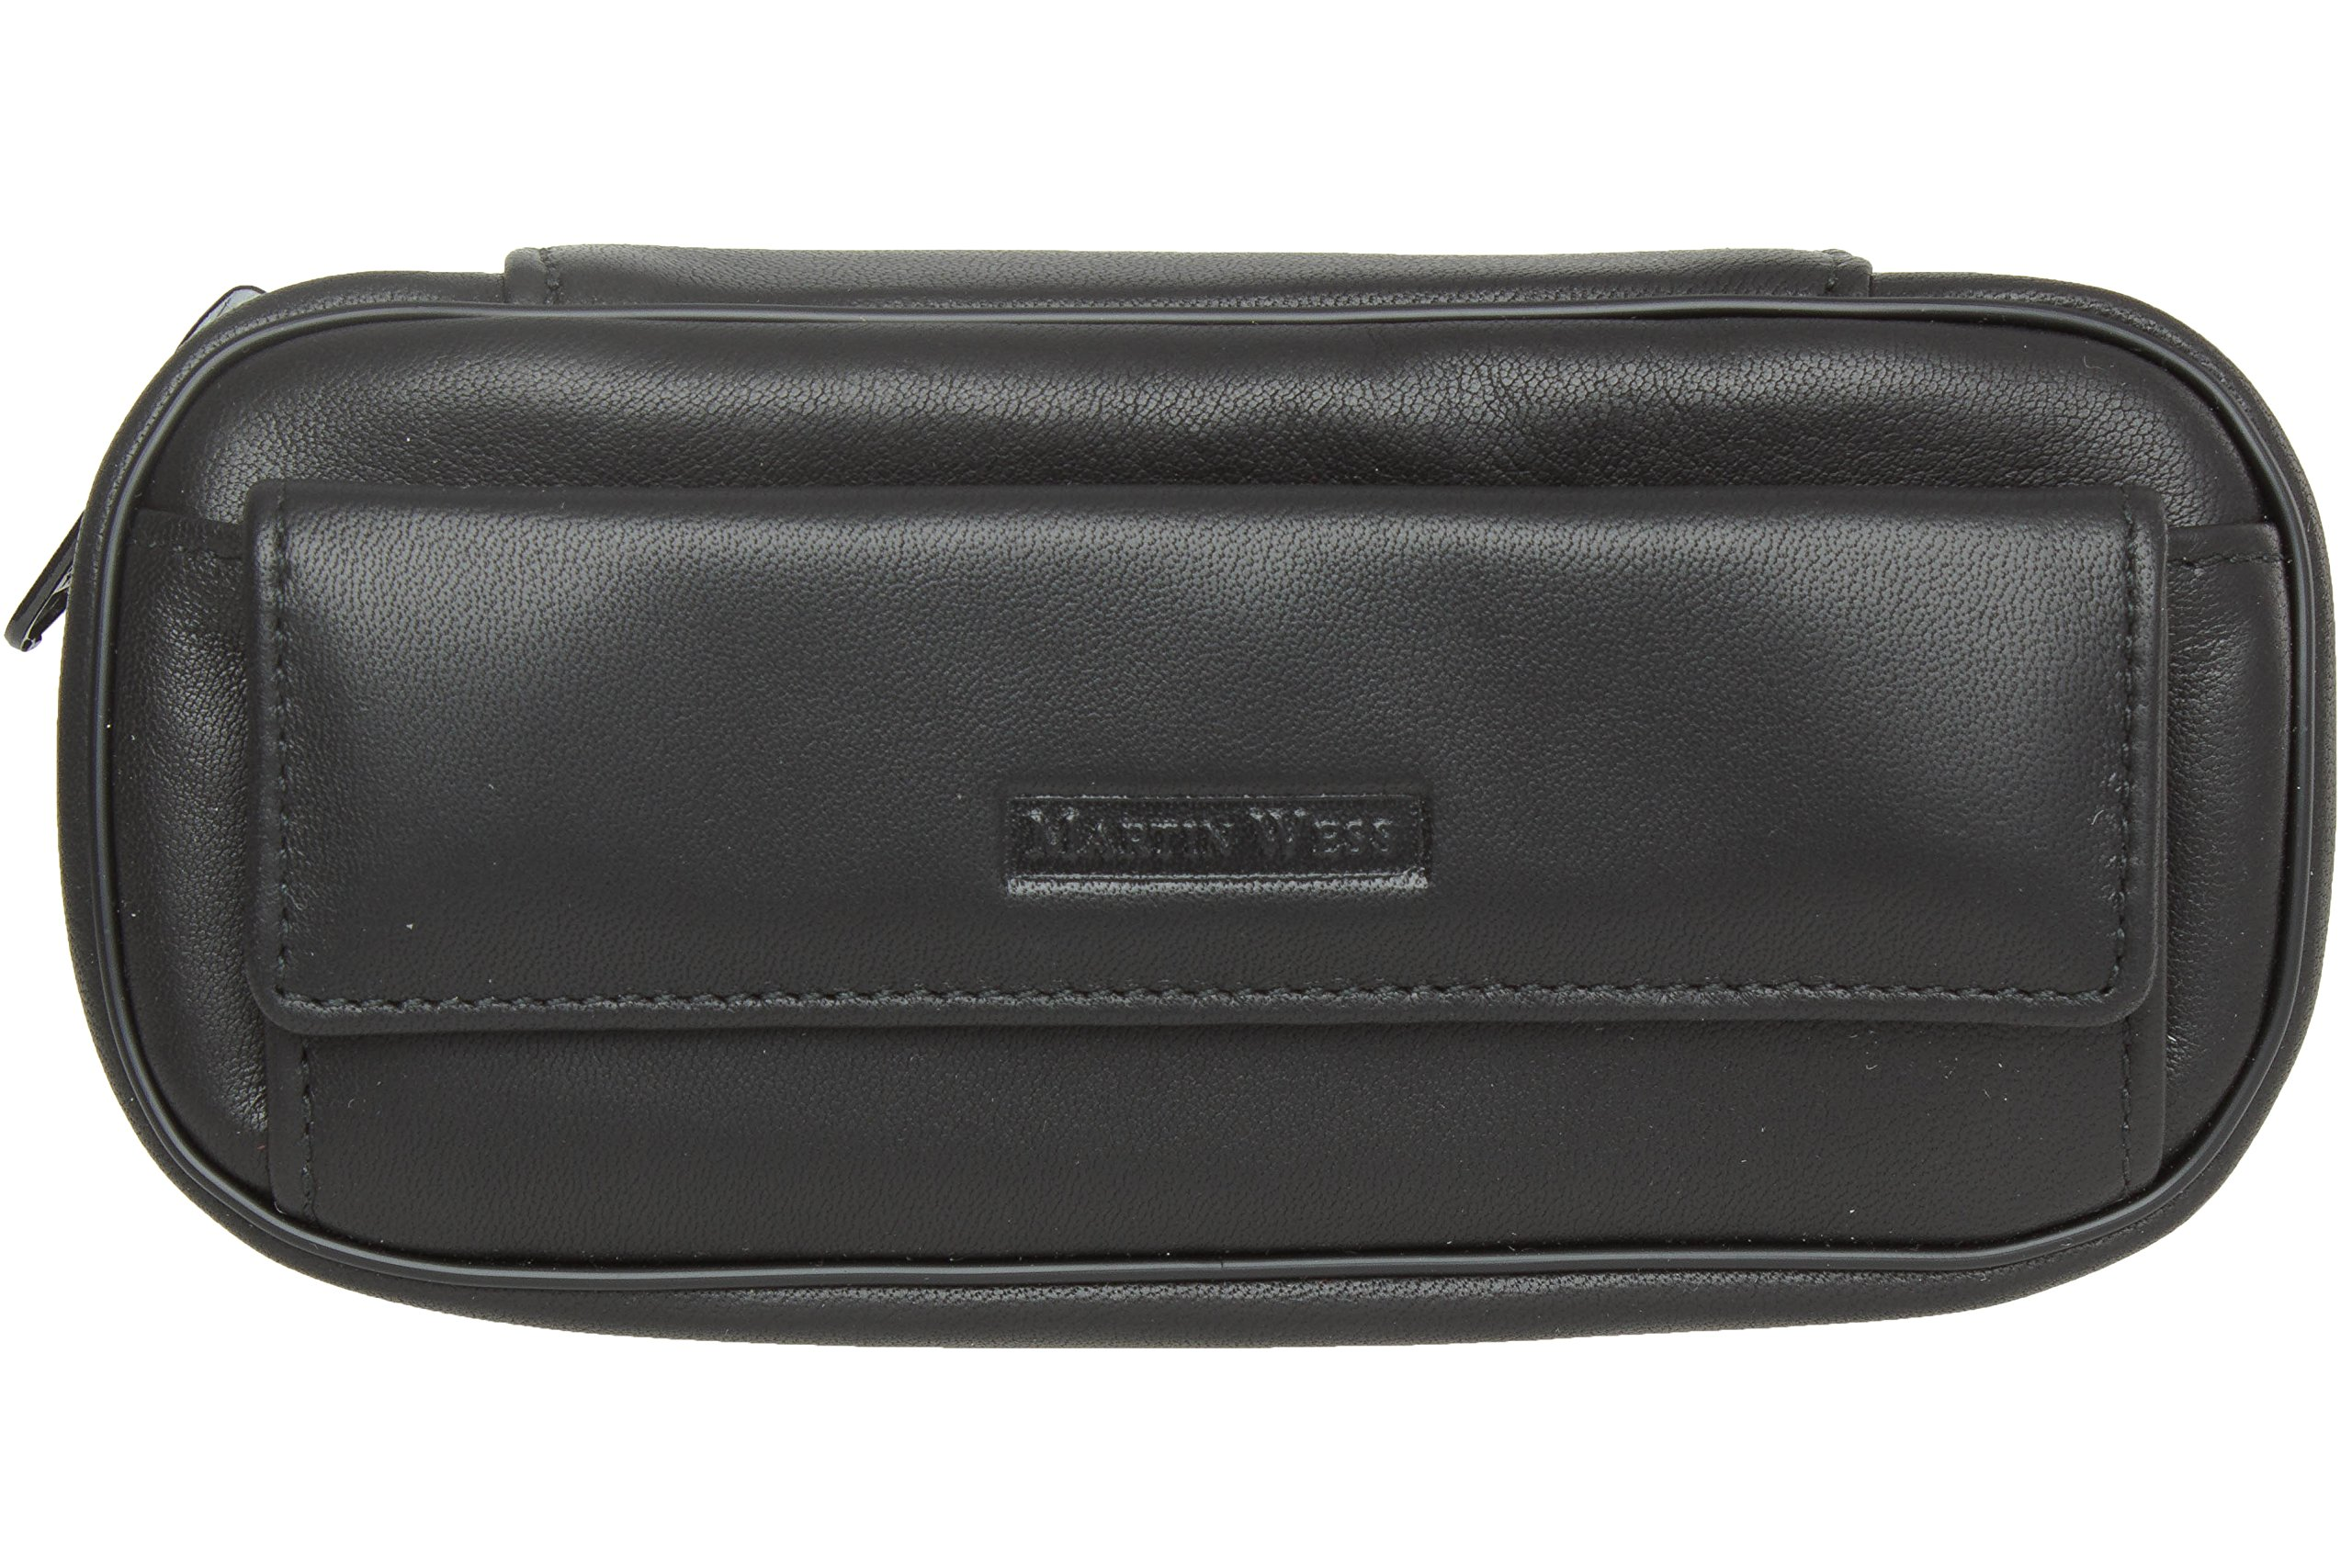 Martin Wess Lea 2 Pipe Bag - P92 by Martin Wess